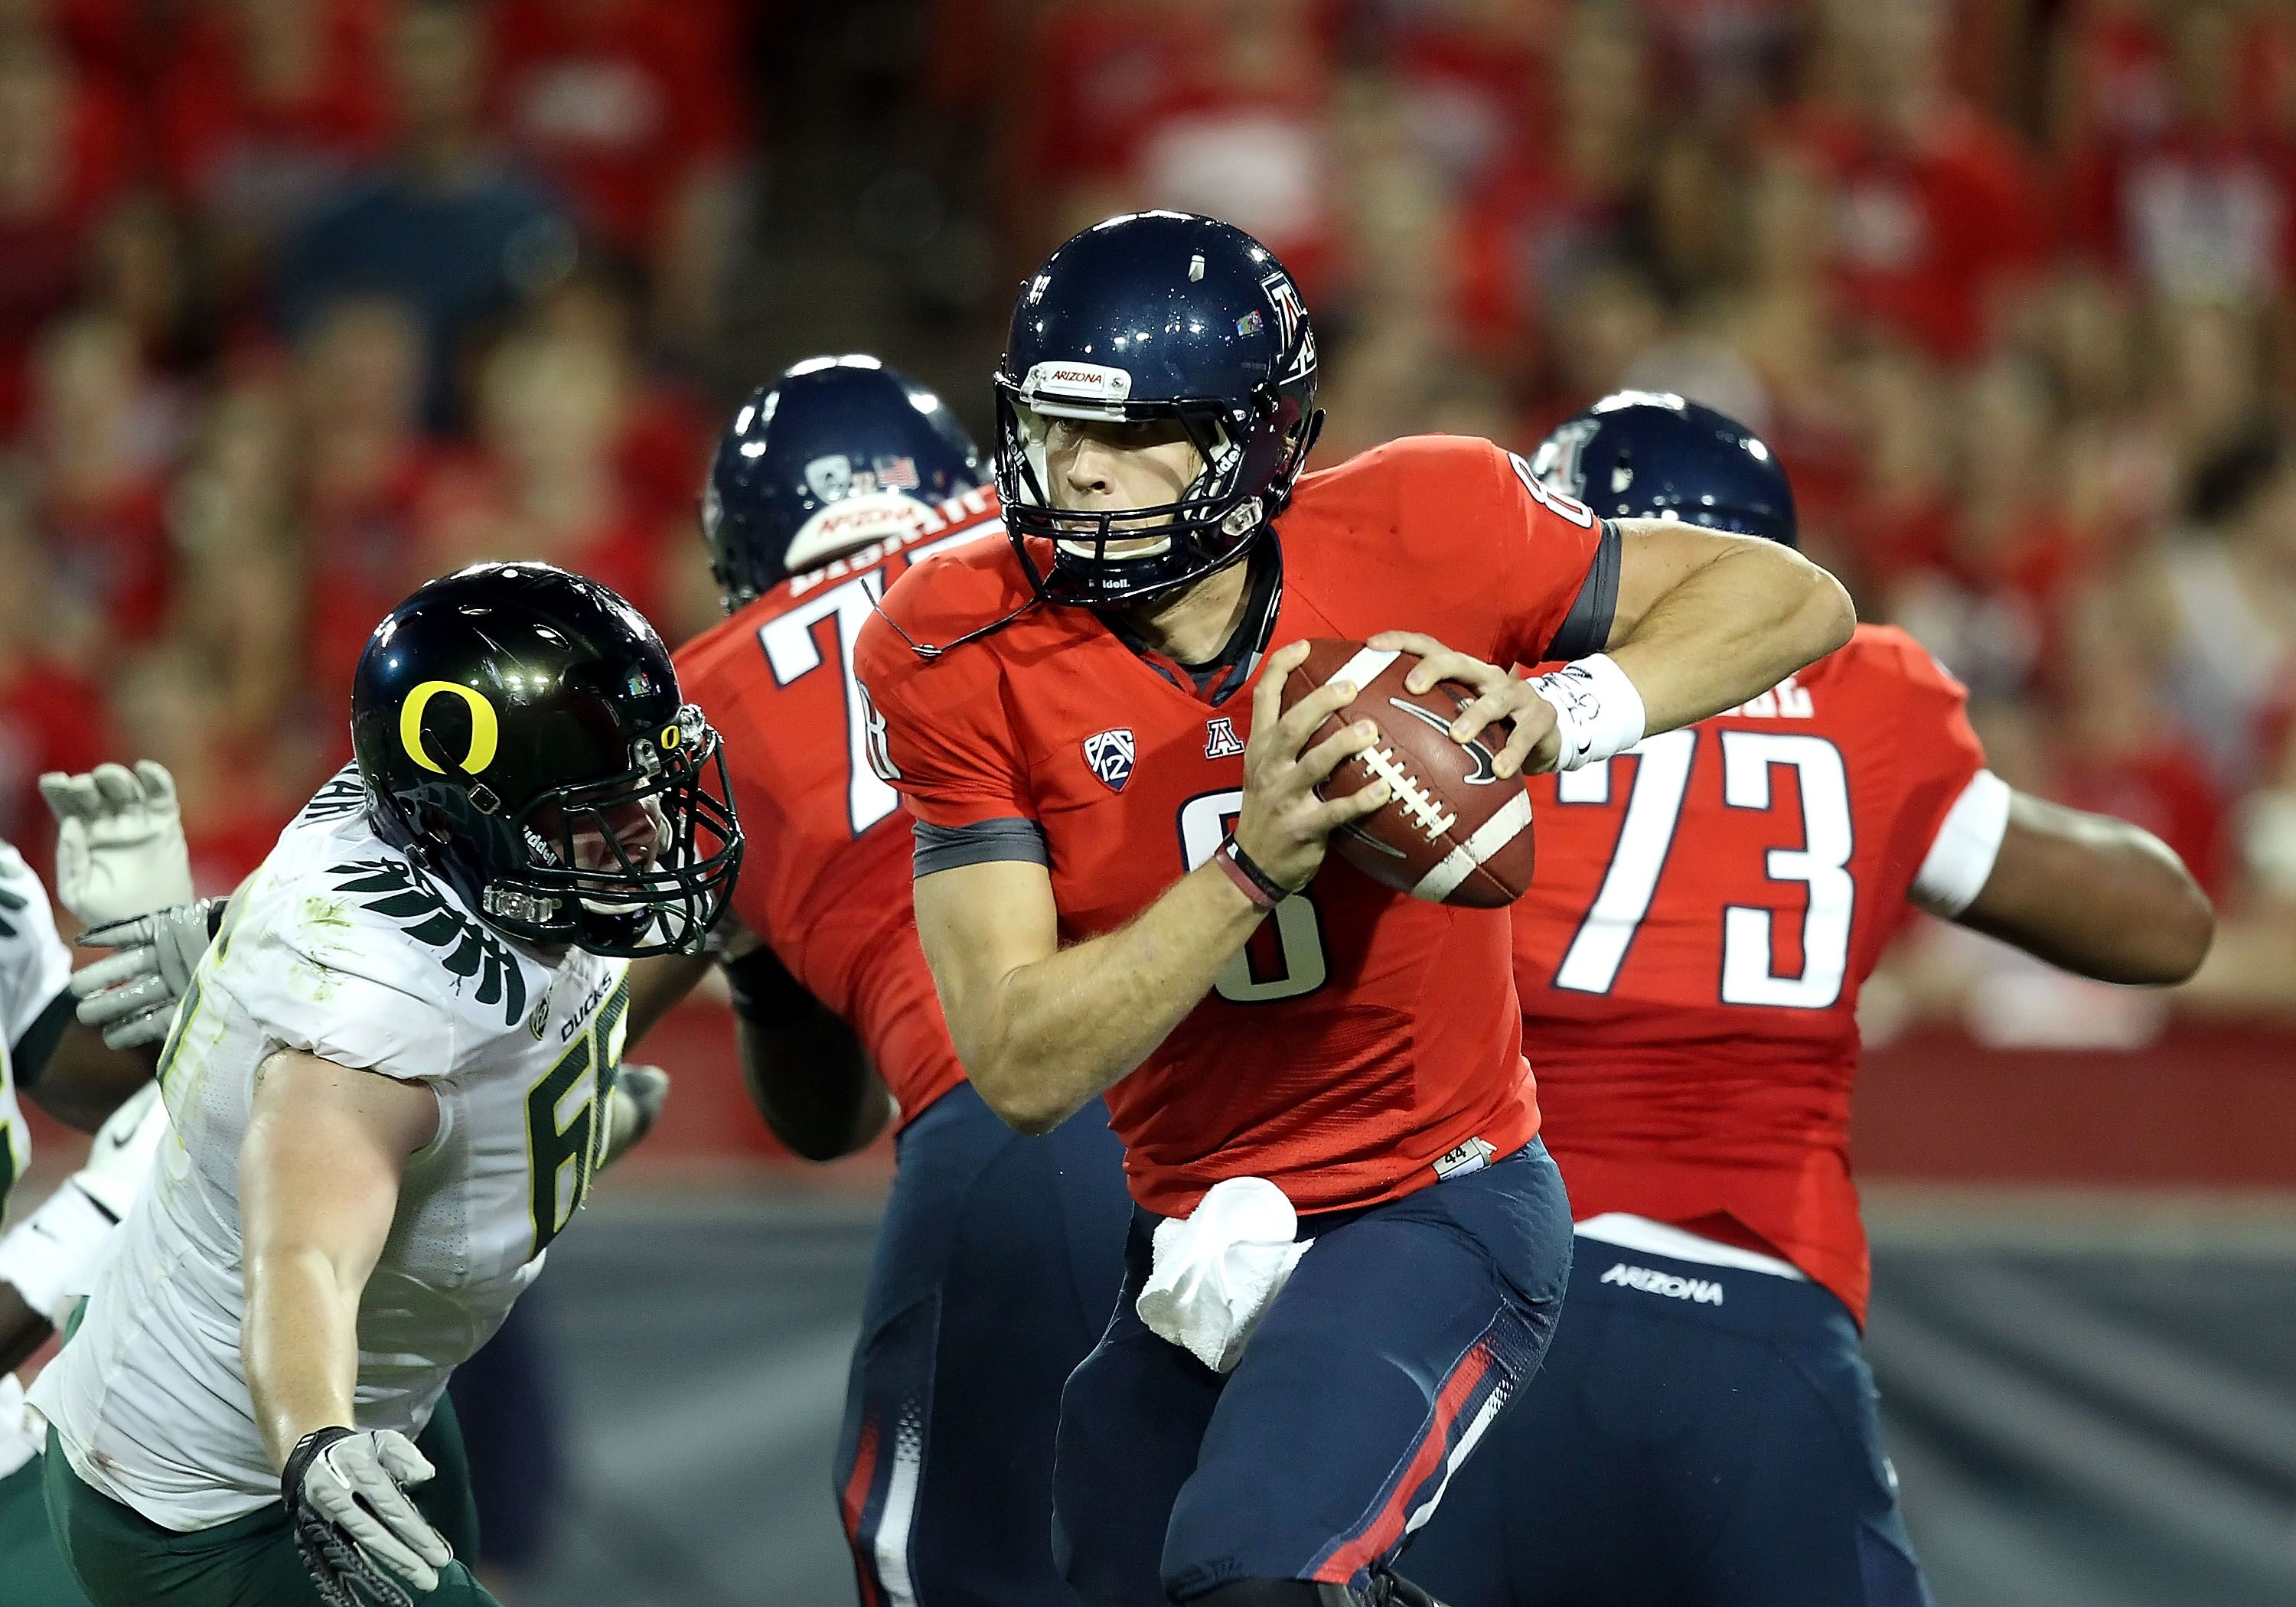 127591132-oregon-v-arizona.jpg